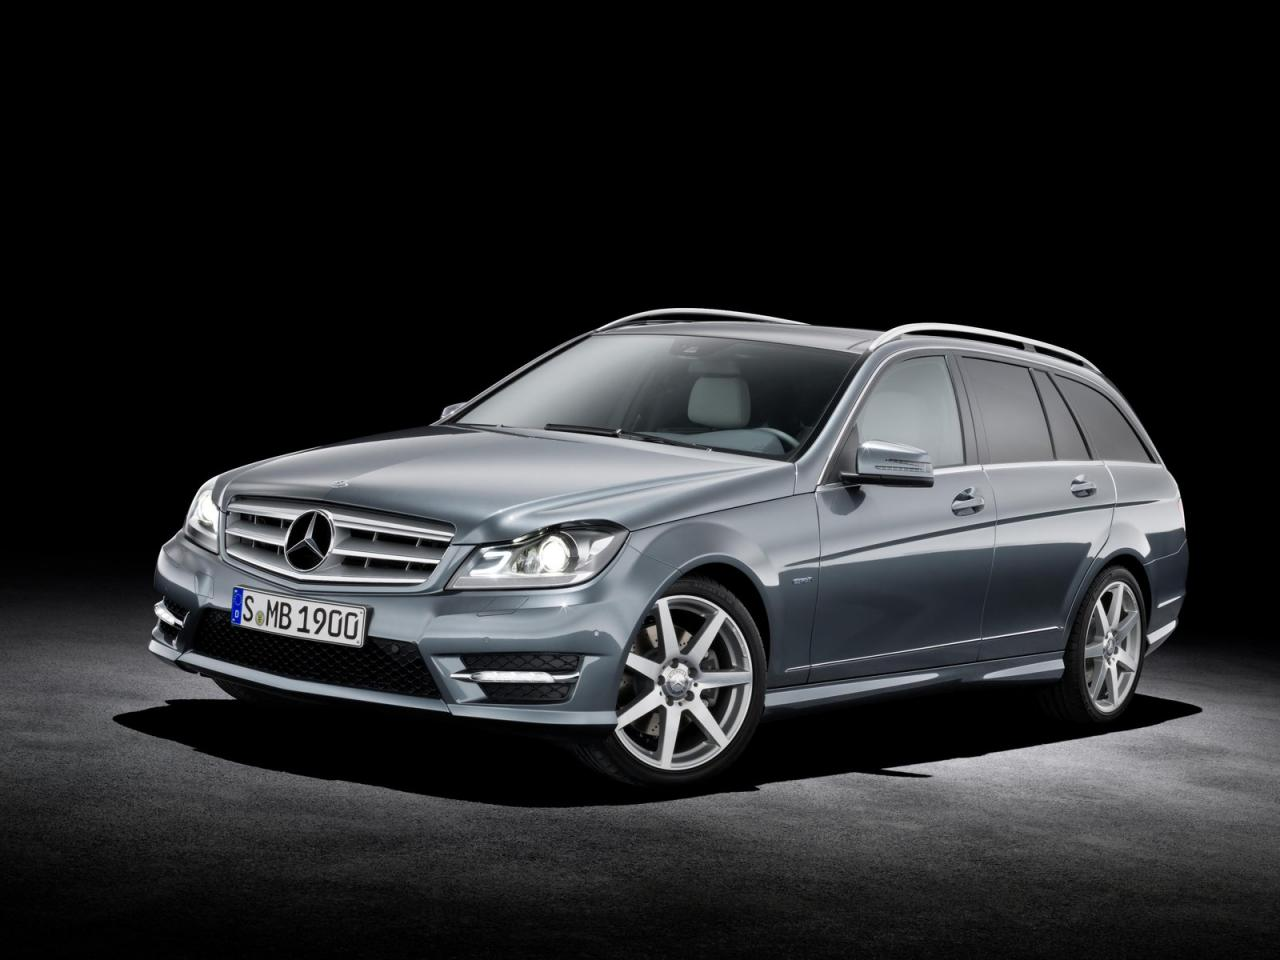 2012 mercedes c klasse facelift is here autoevolution. Black Bedroom Furniture Sets. Home Design Ideas